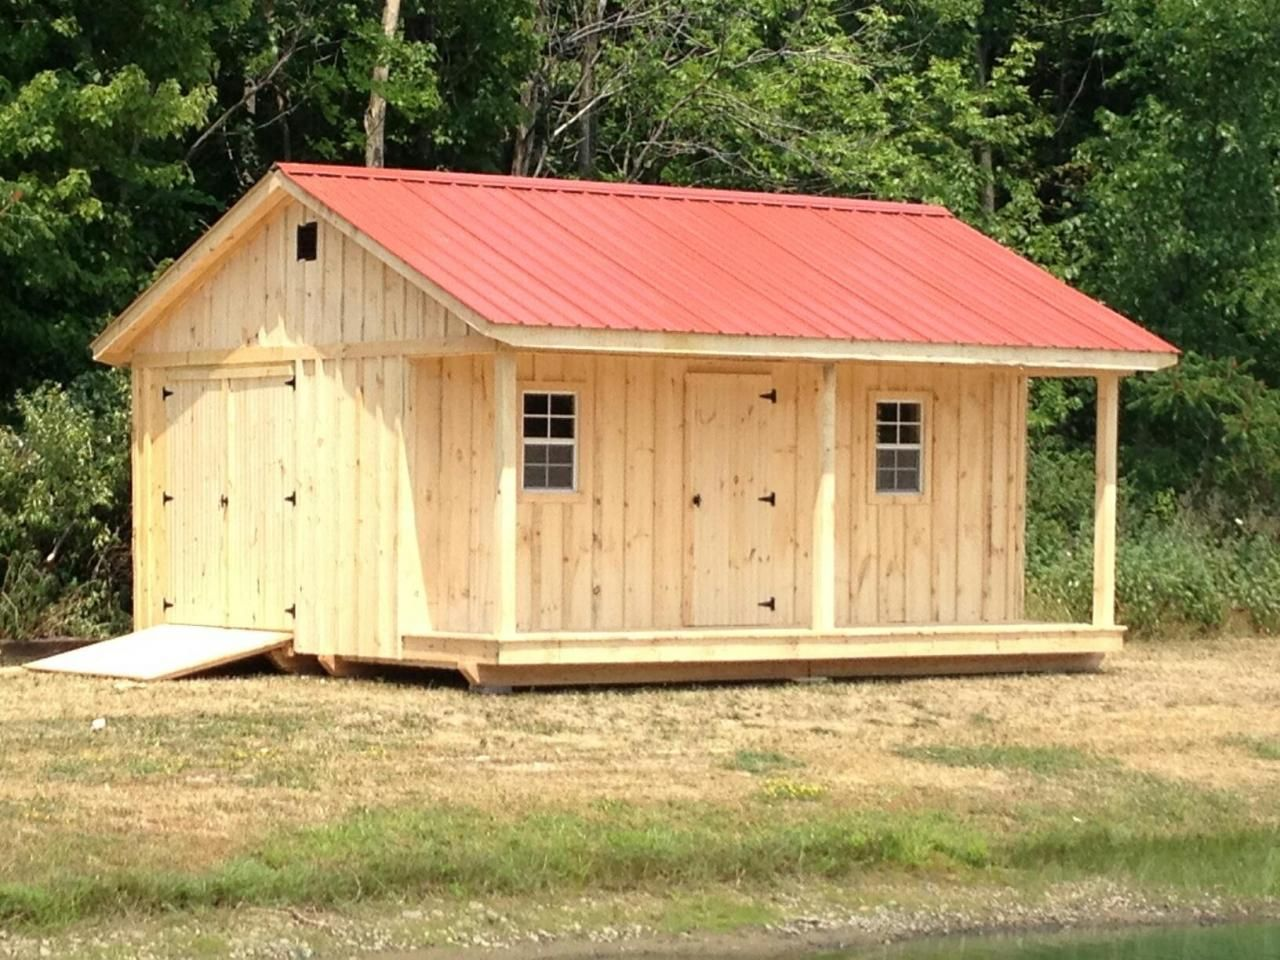 10 39 x 18 39 shed with 4 39 porch metal roof windows and for Barn with porch